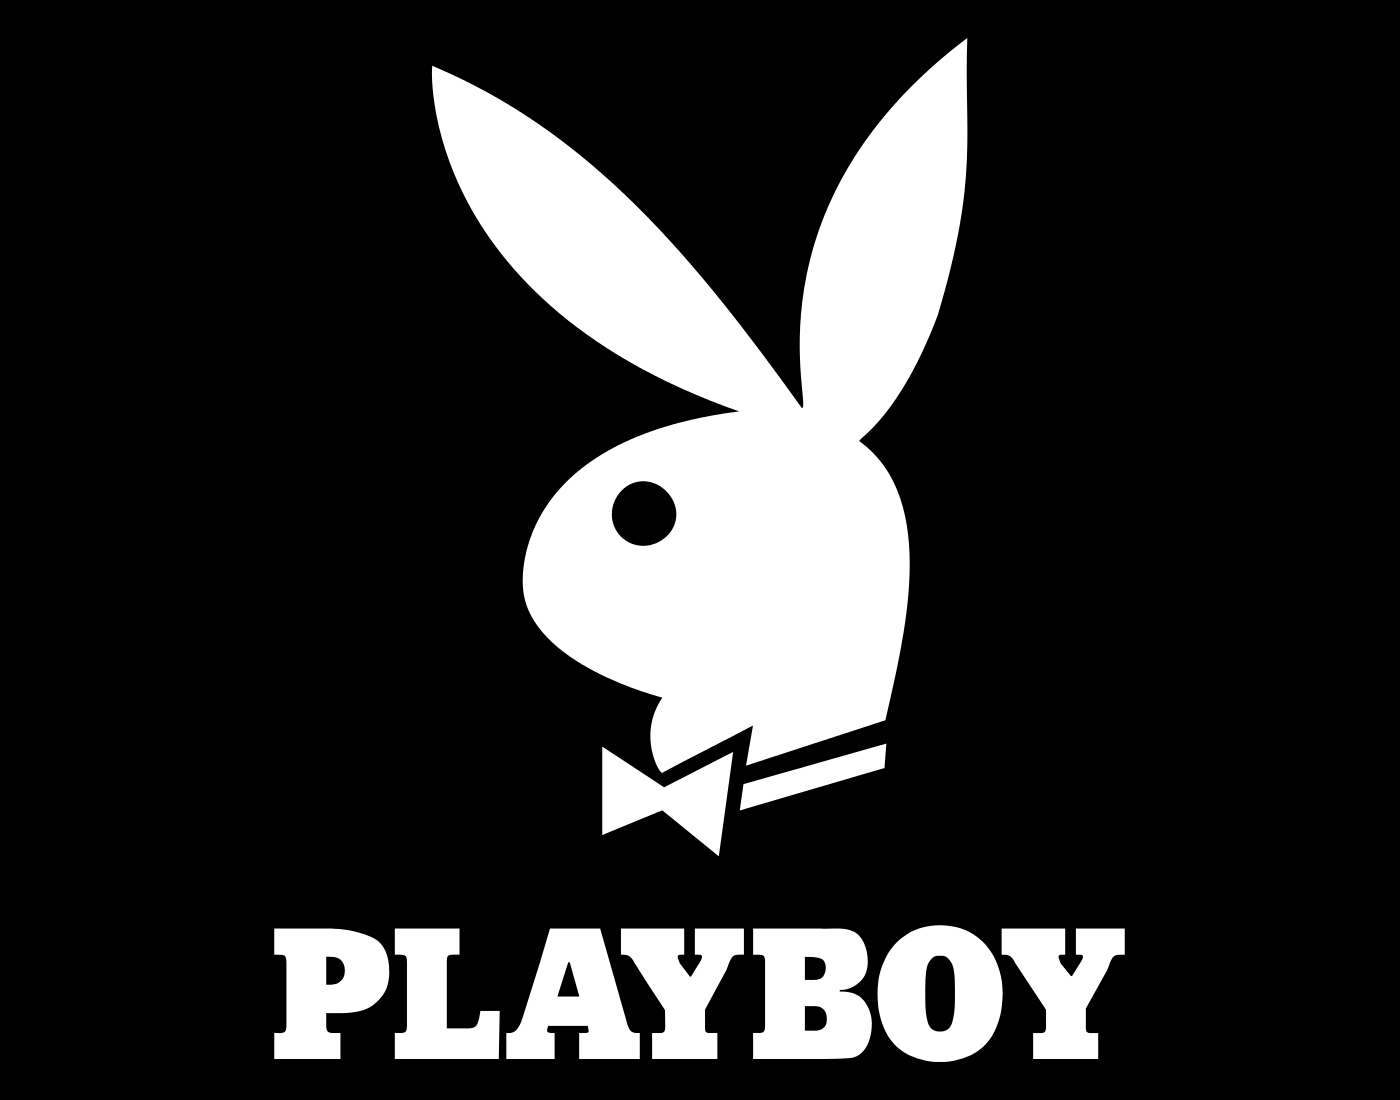 Playboy art director who created iconic bunny logo dies at 93